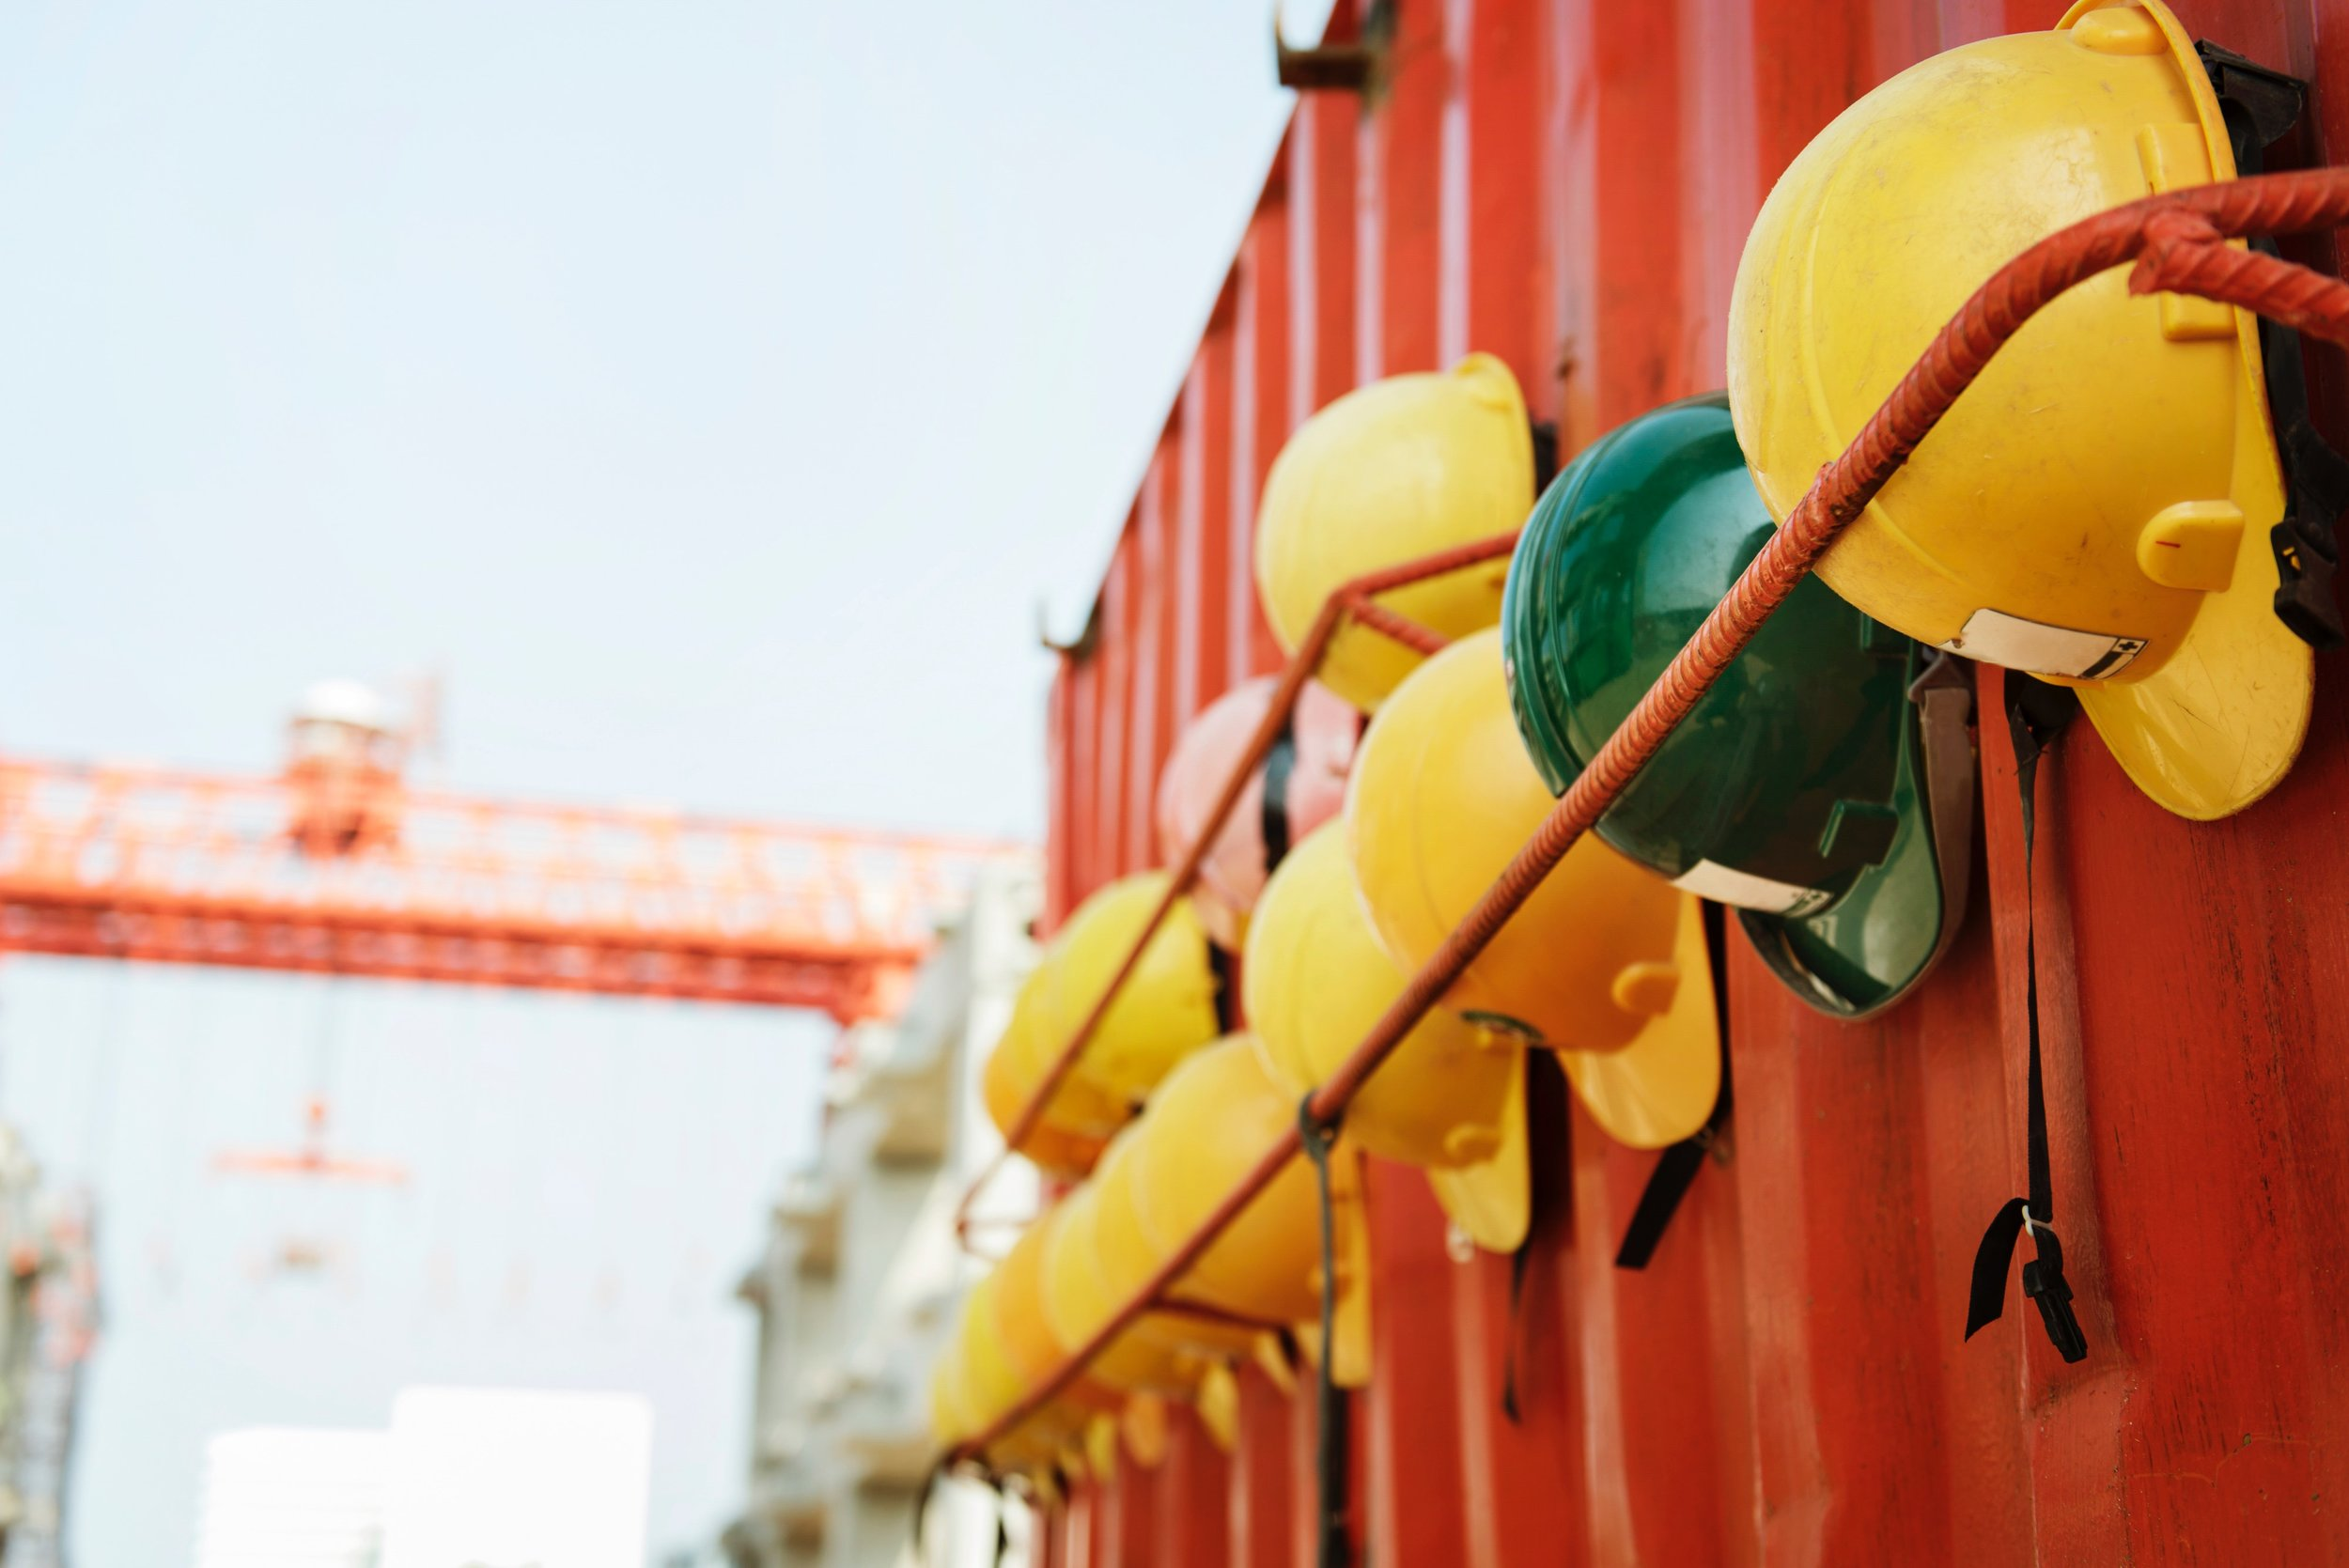 Check out this month's featured SAFETY article